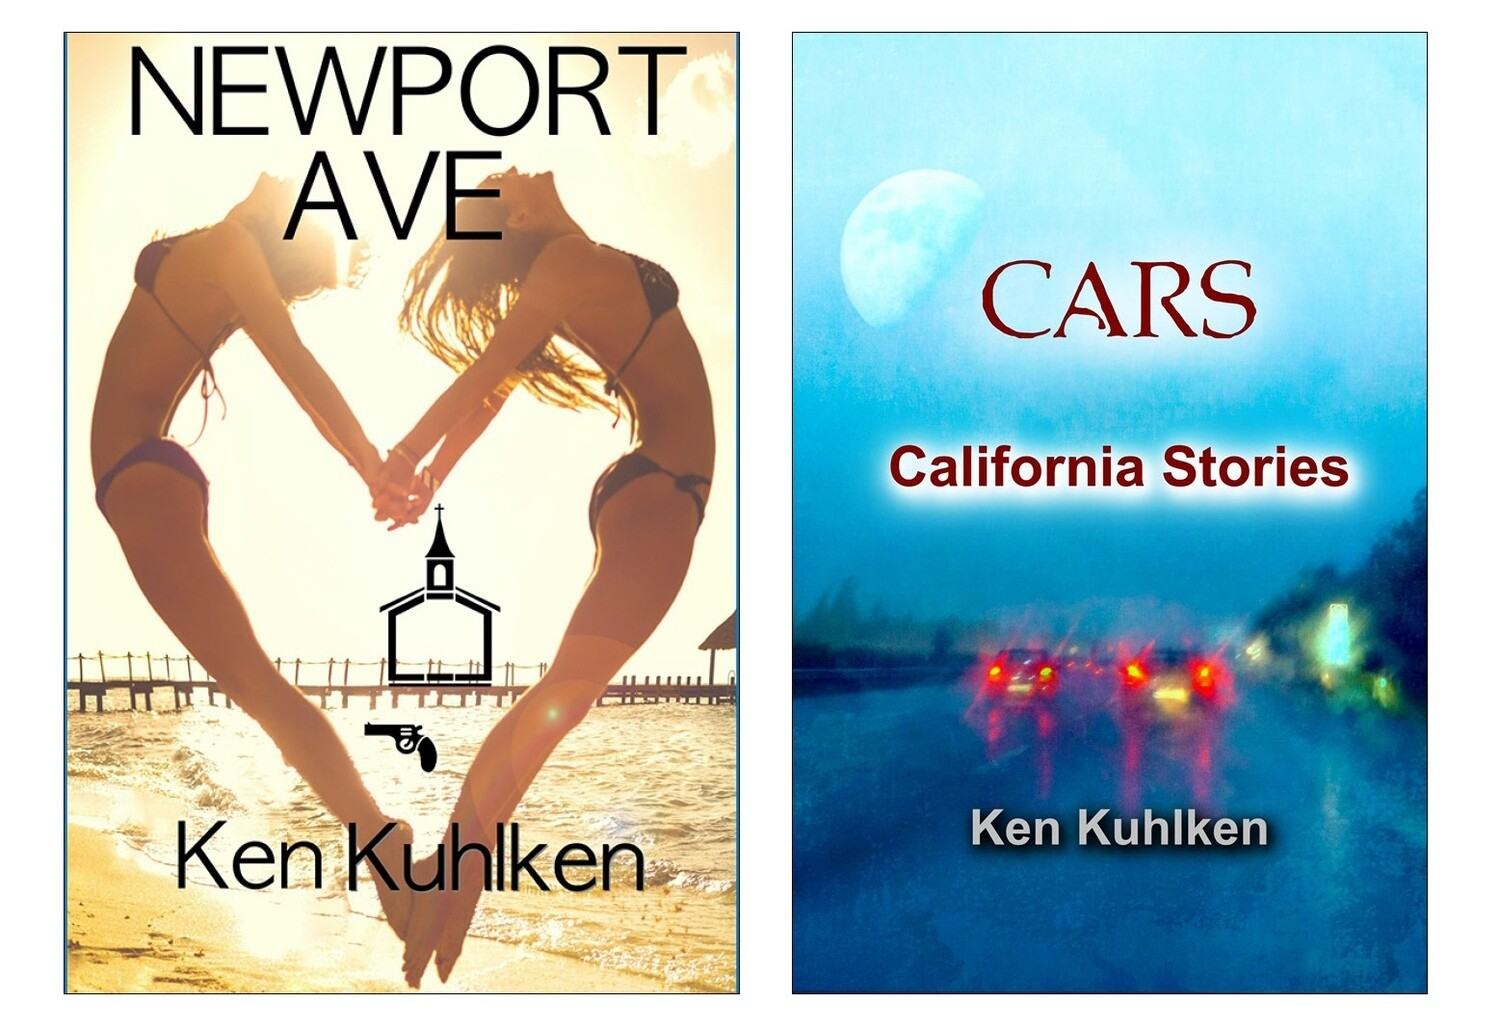 Cars and Newport Ave.